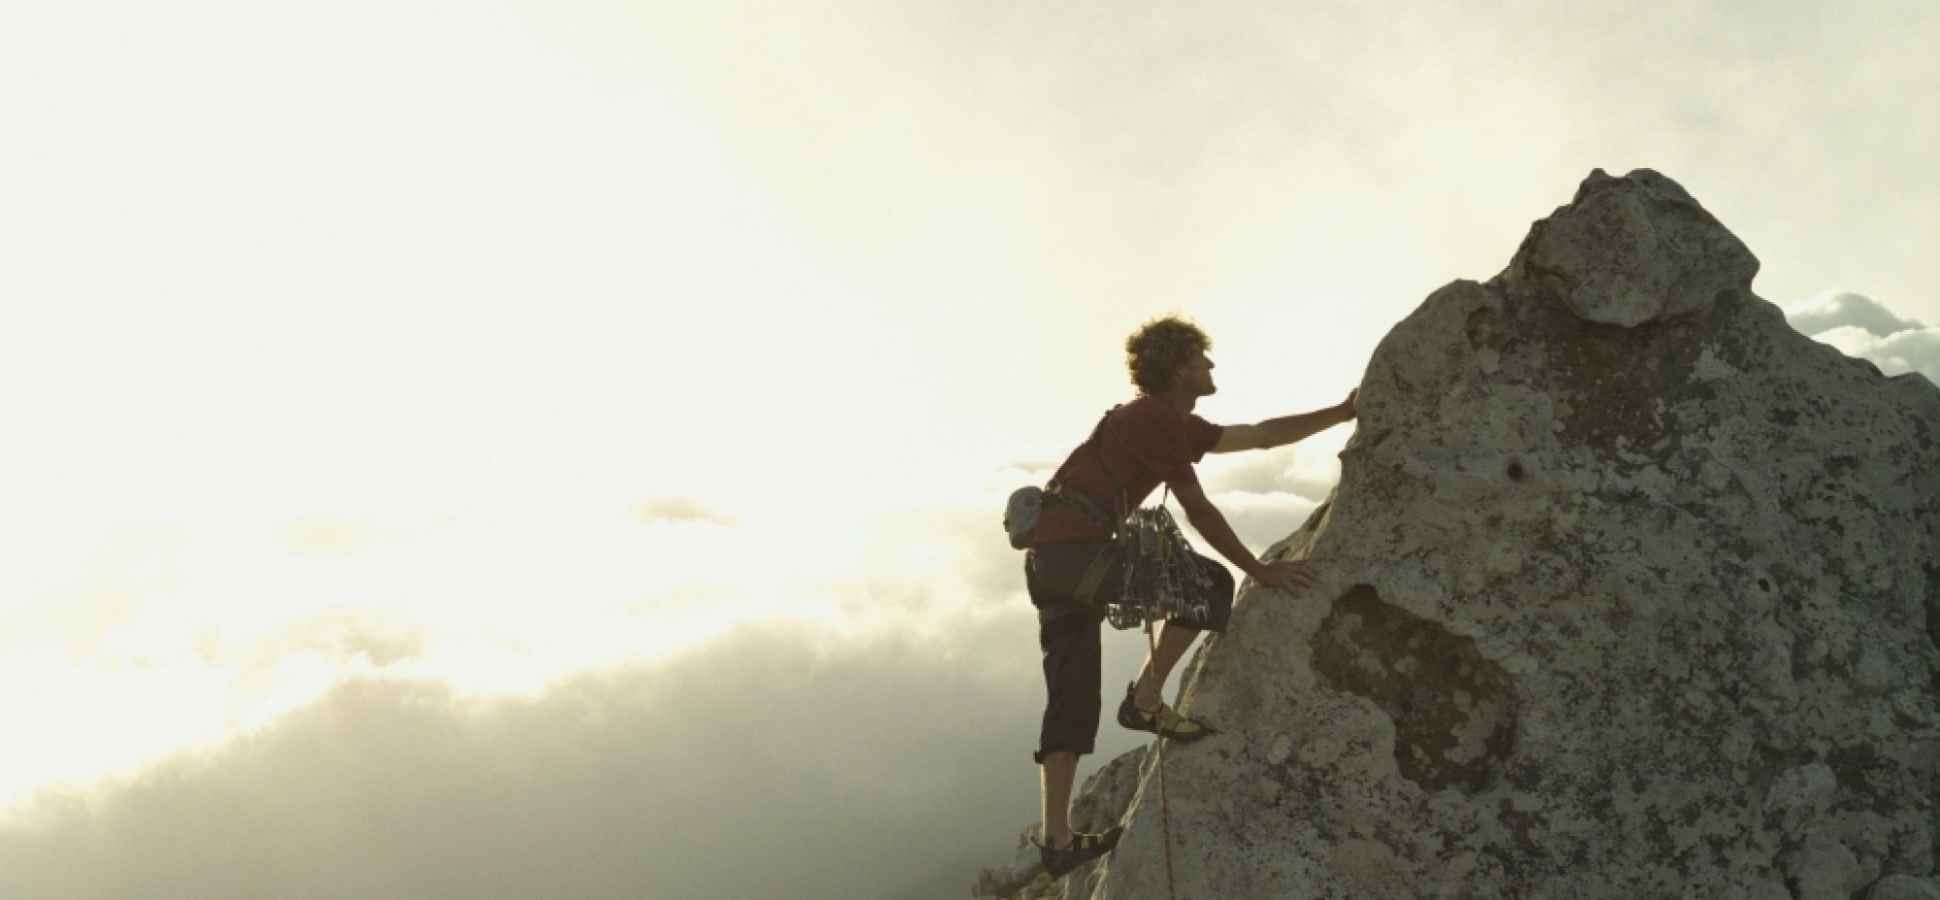 Want to Know How to Survive a Business Catastrophe? Take These Tips From a Pro Mountain Climber